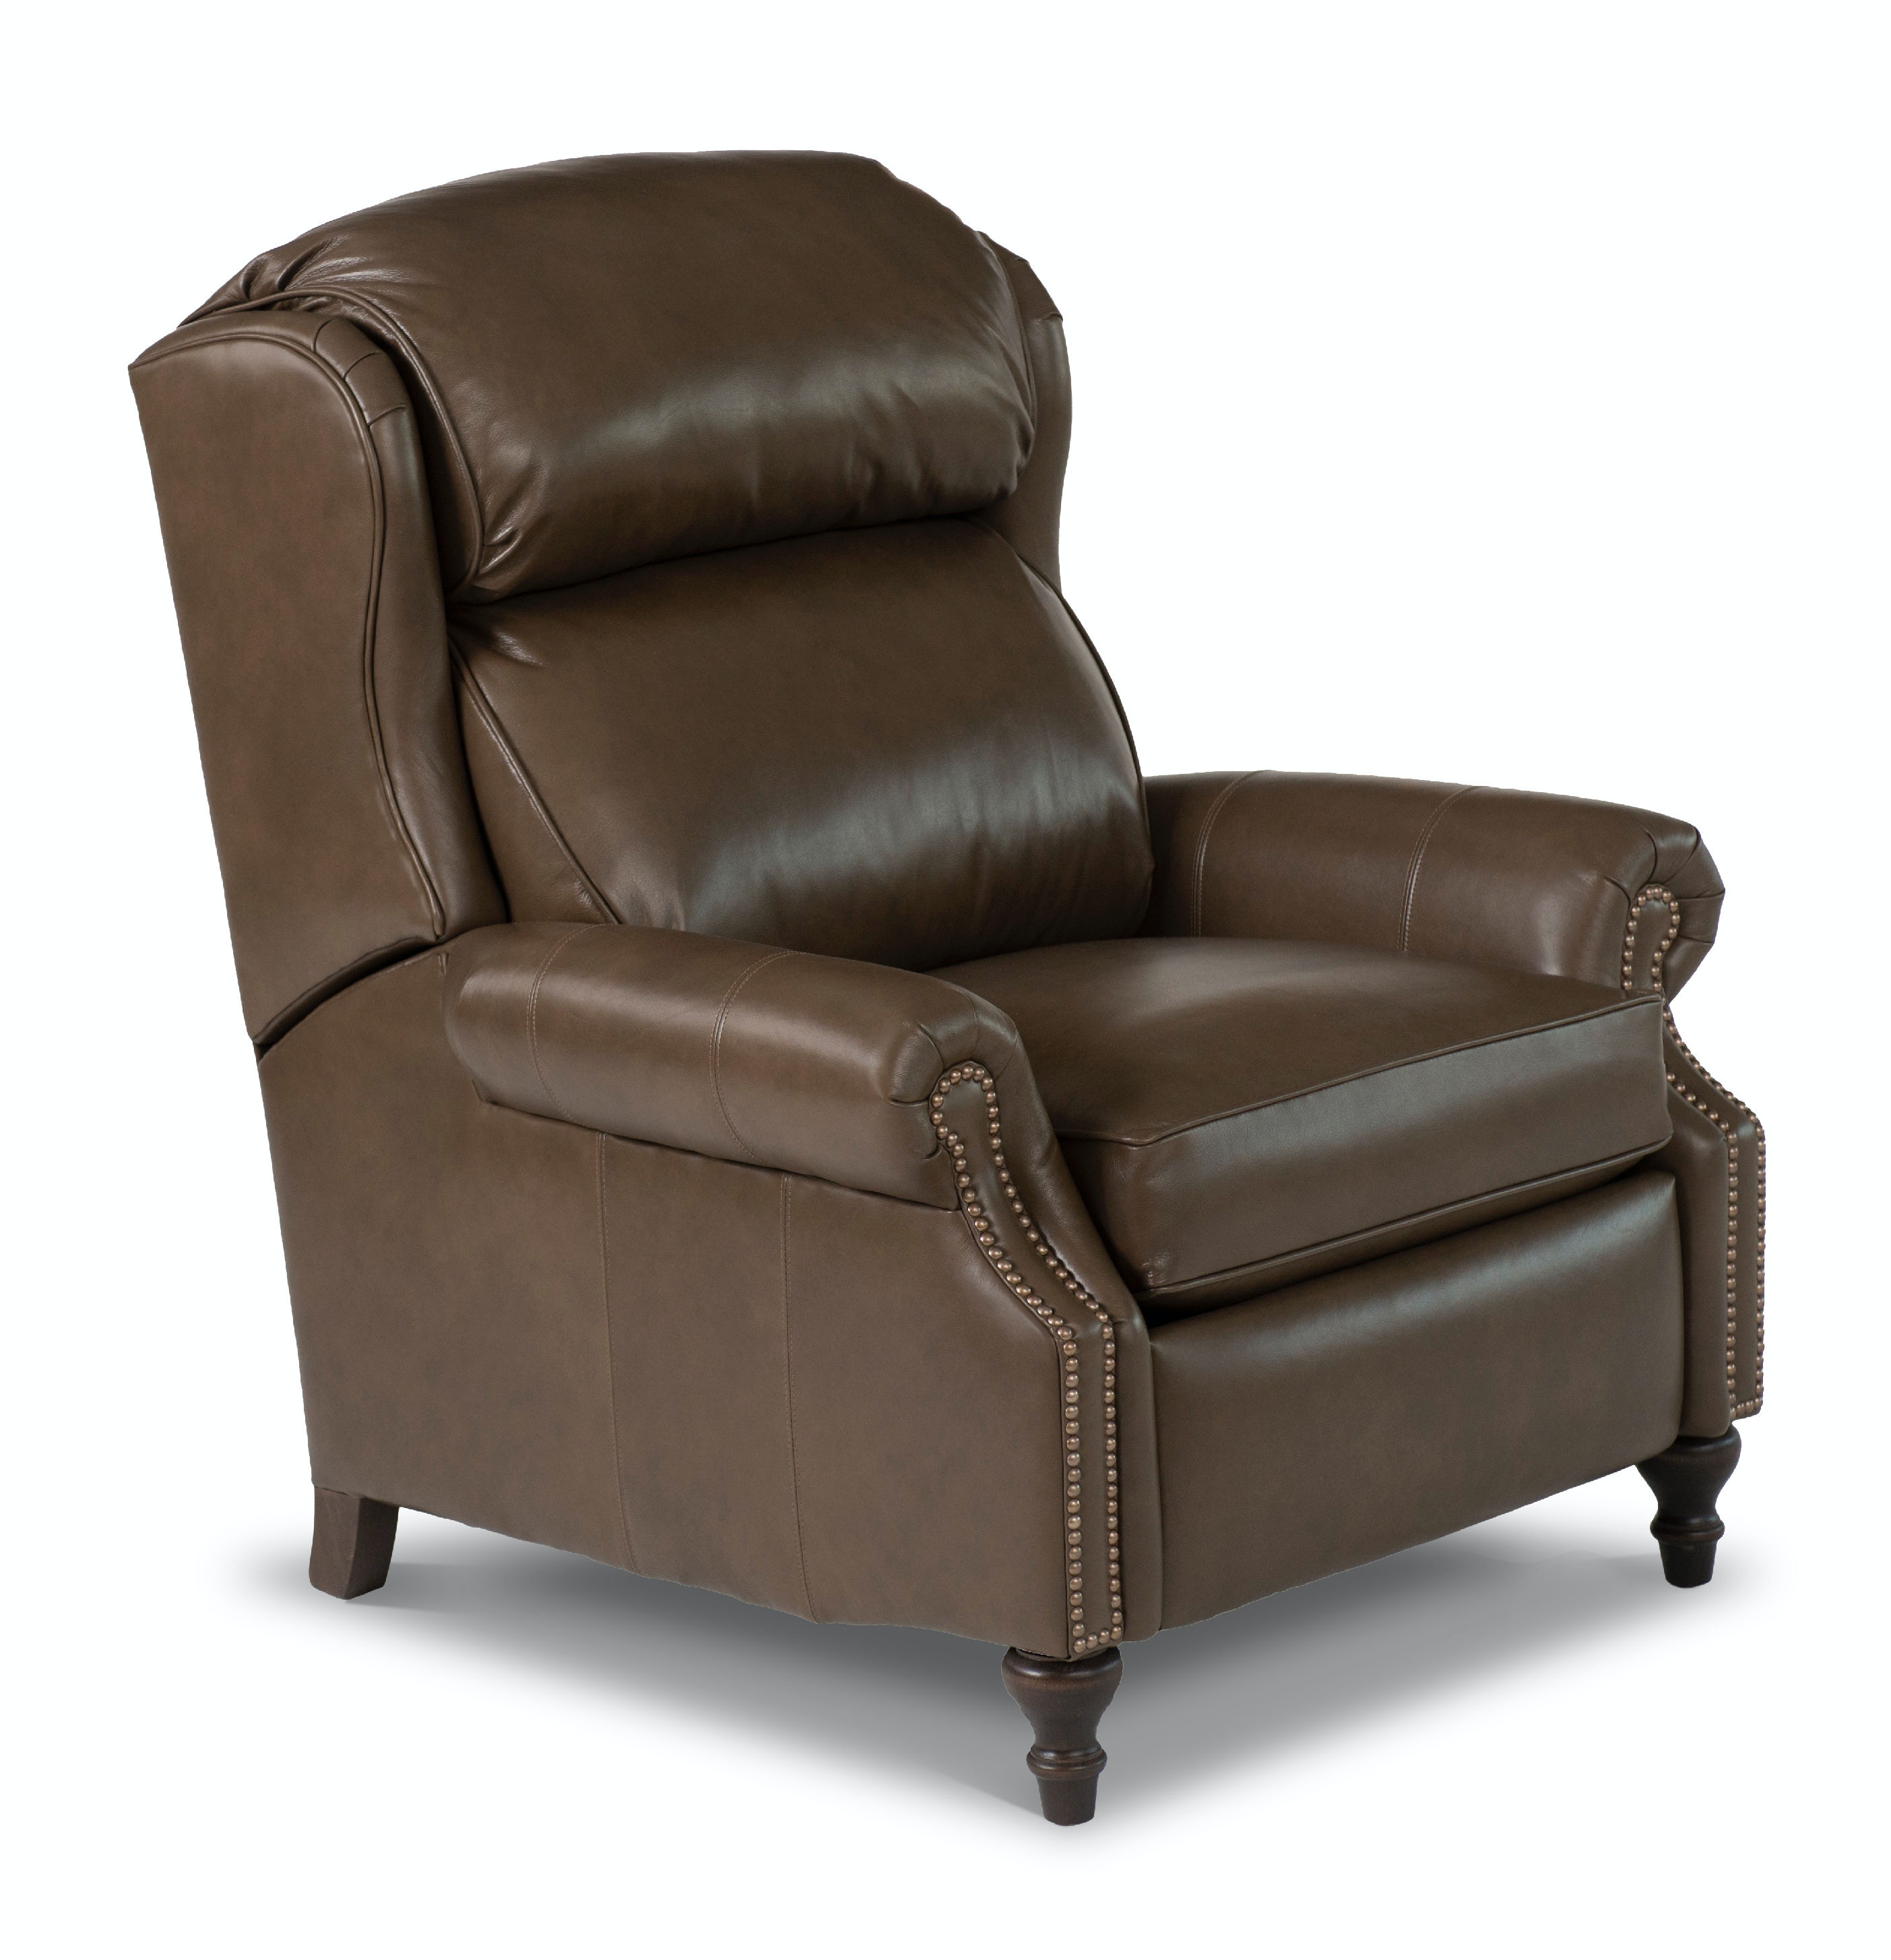 Smith Brothers Big/Tall Pressback Reclining Chair 732 76